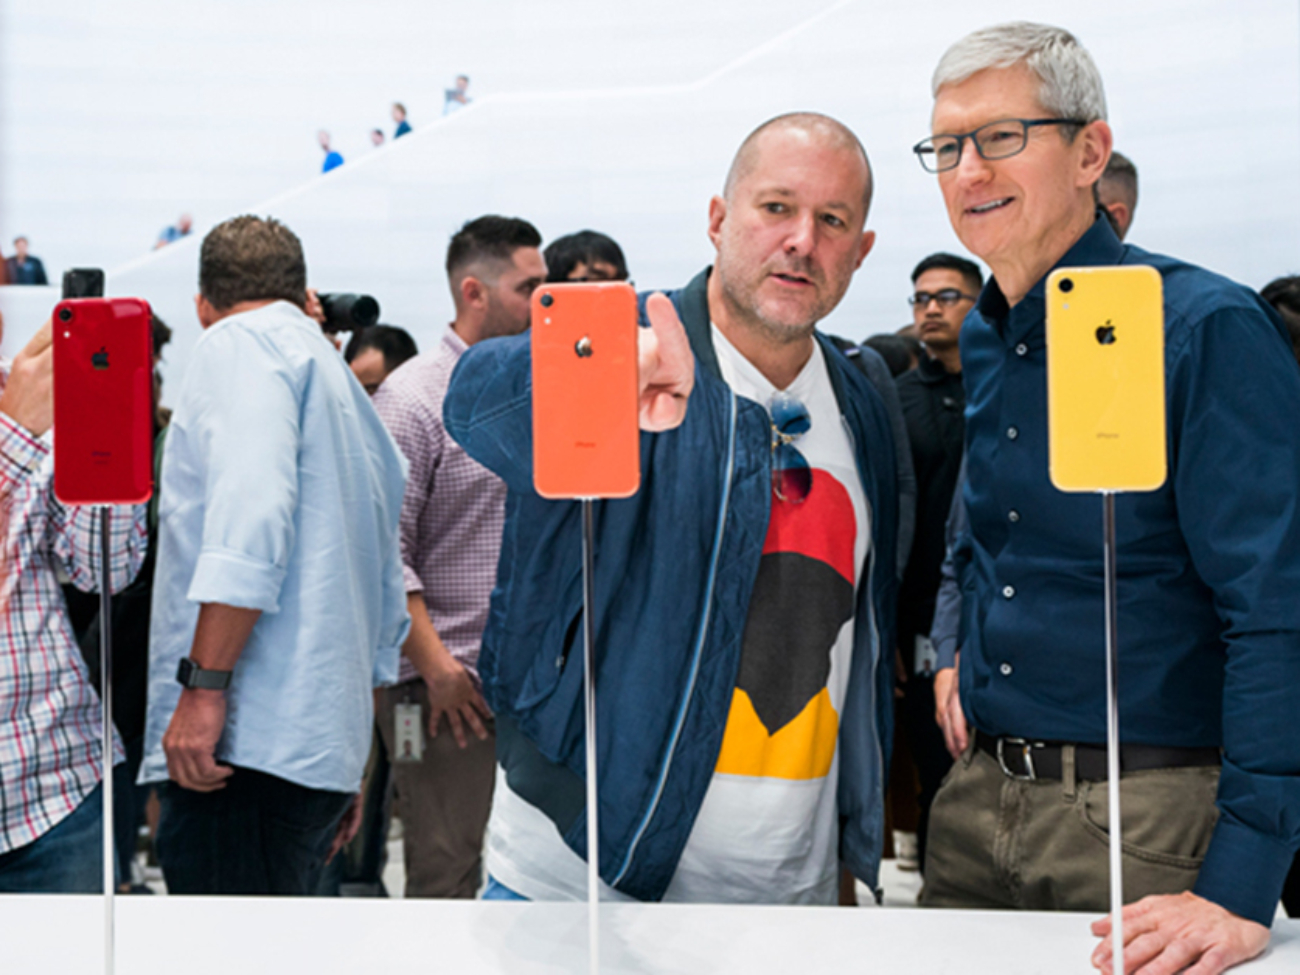 Apple-update-tim-cook-jonathan-ive-062619_big.jpg.large